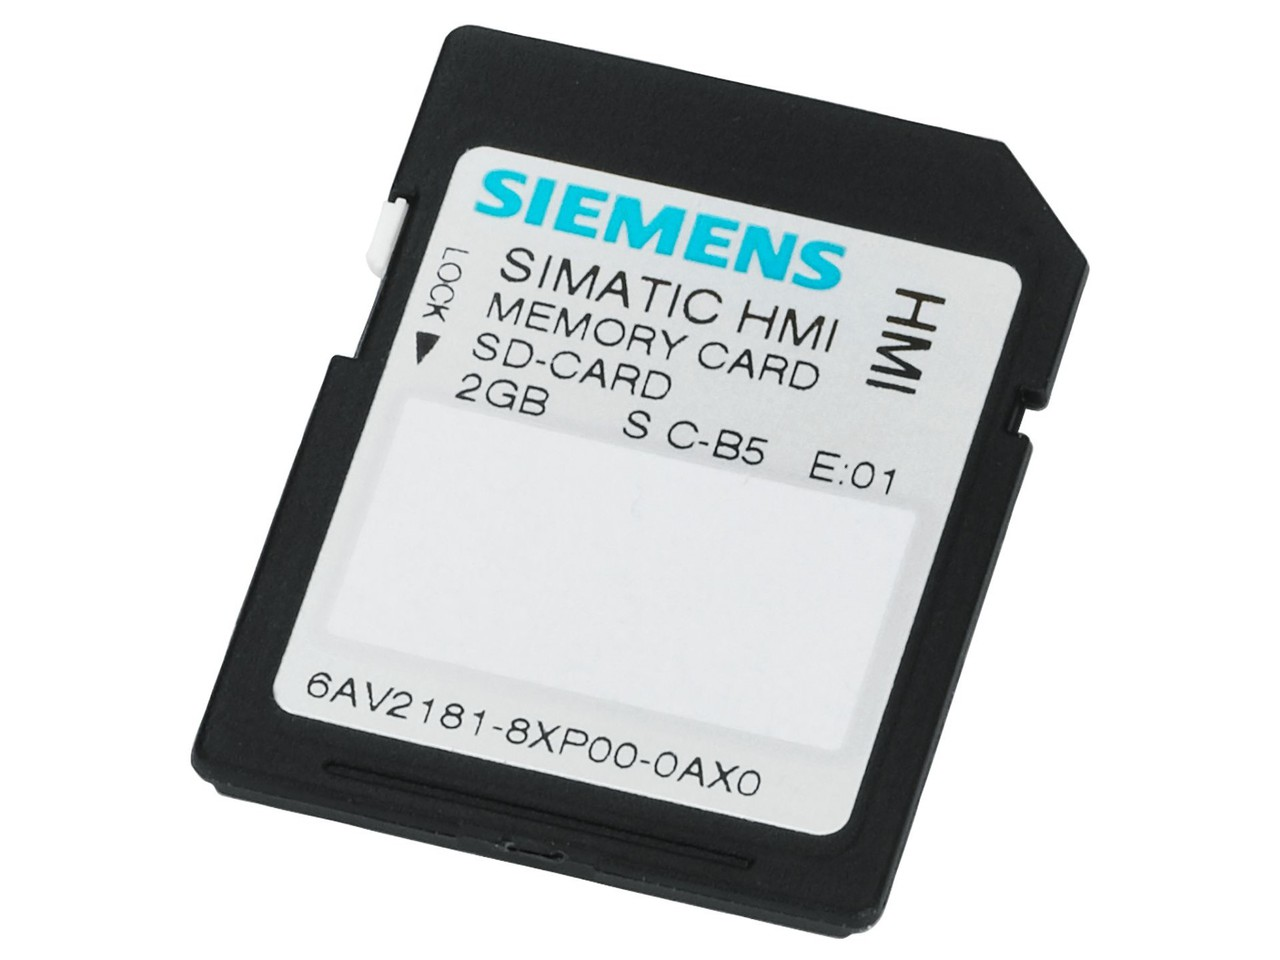 Siemens Simatic 2G Memory Card 6AV2 181 8XP00-0AX0 Unused Unopened